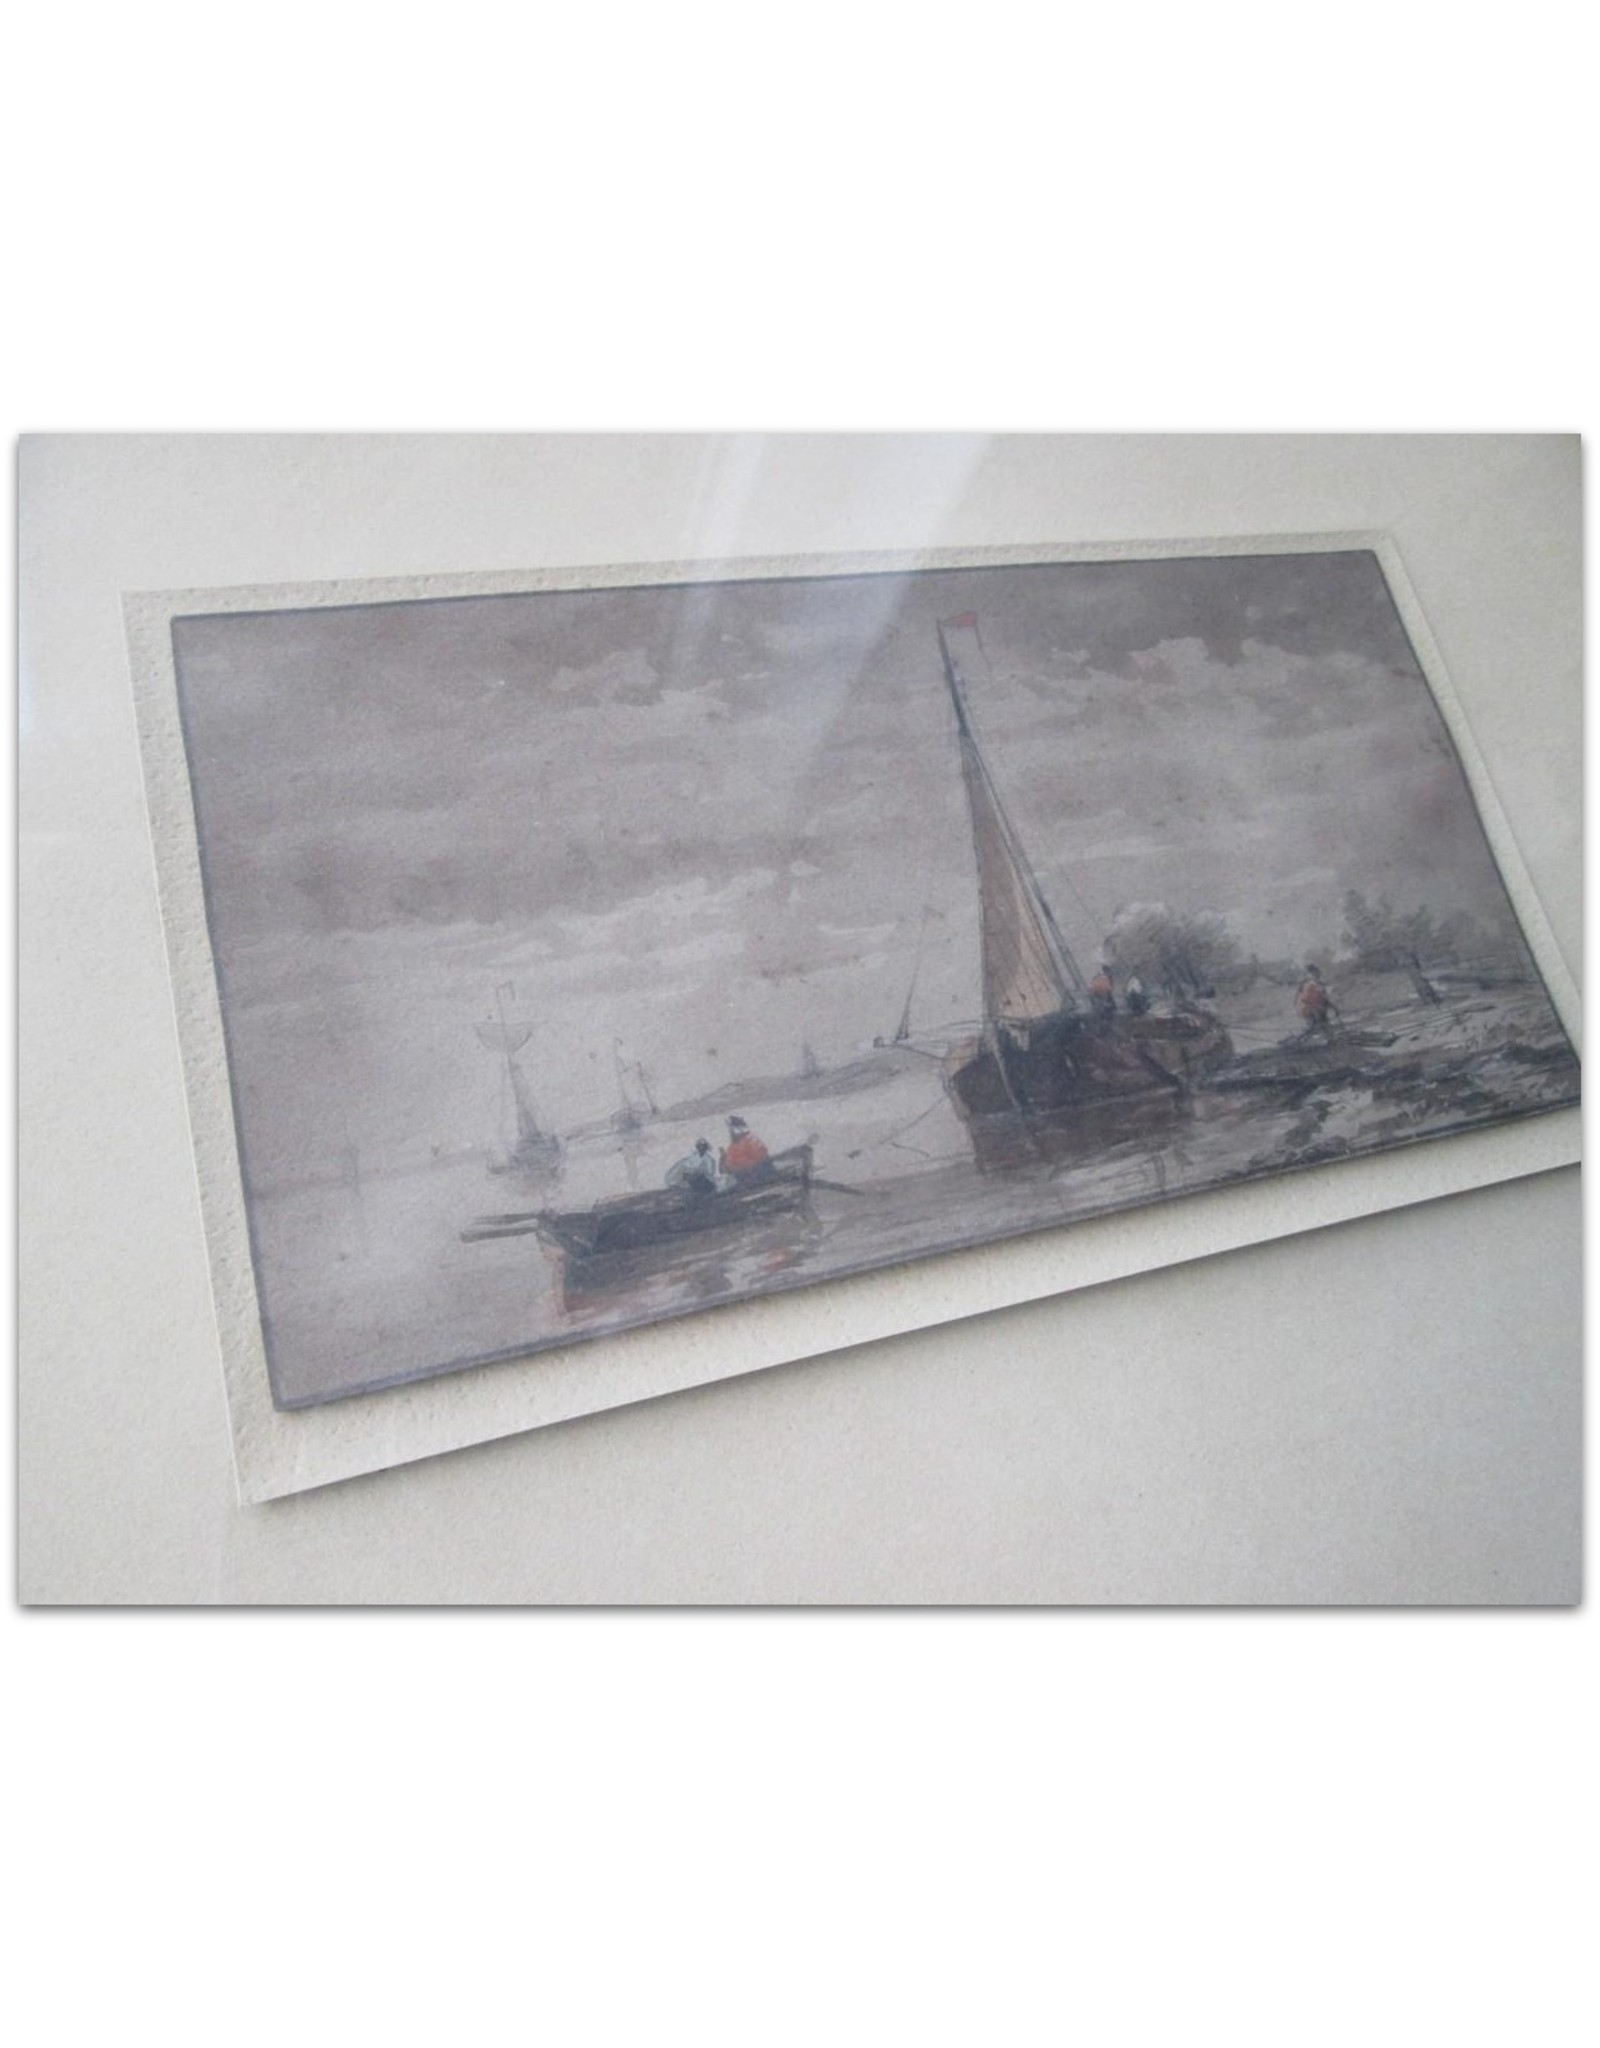 [Anonymous] - Fisherman's scene [19th century, watercolor on paper]